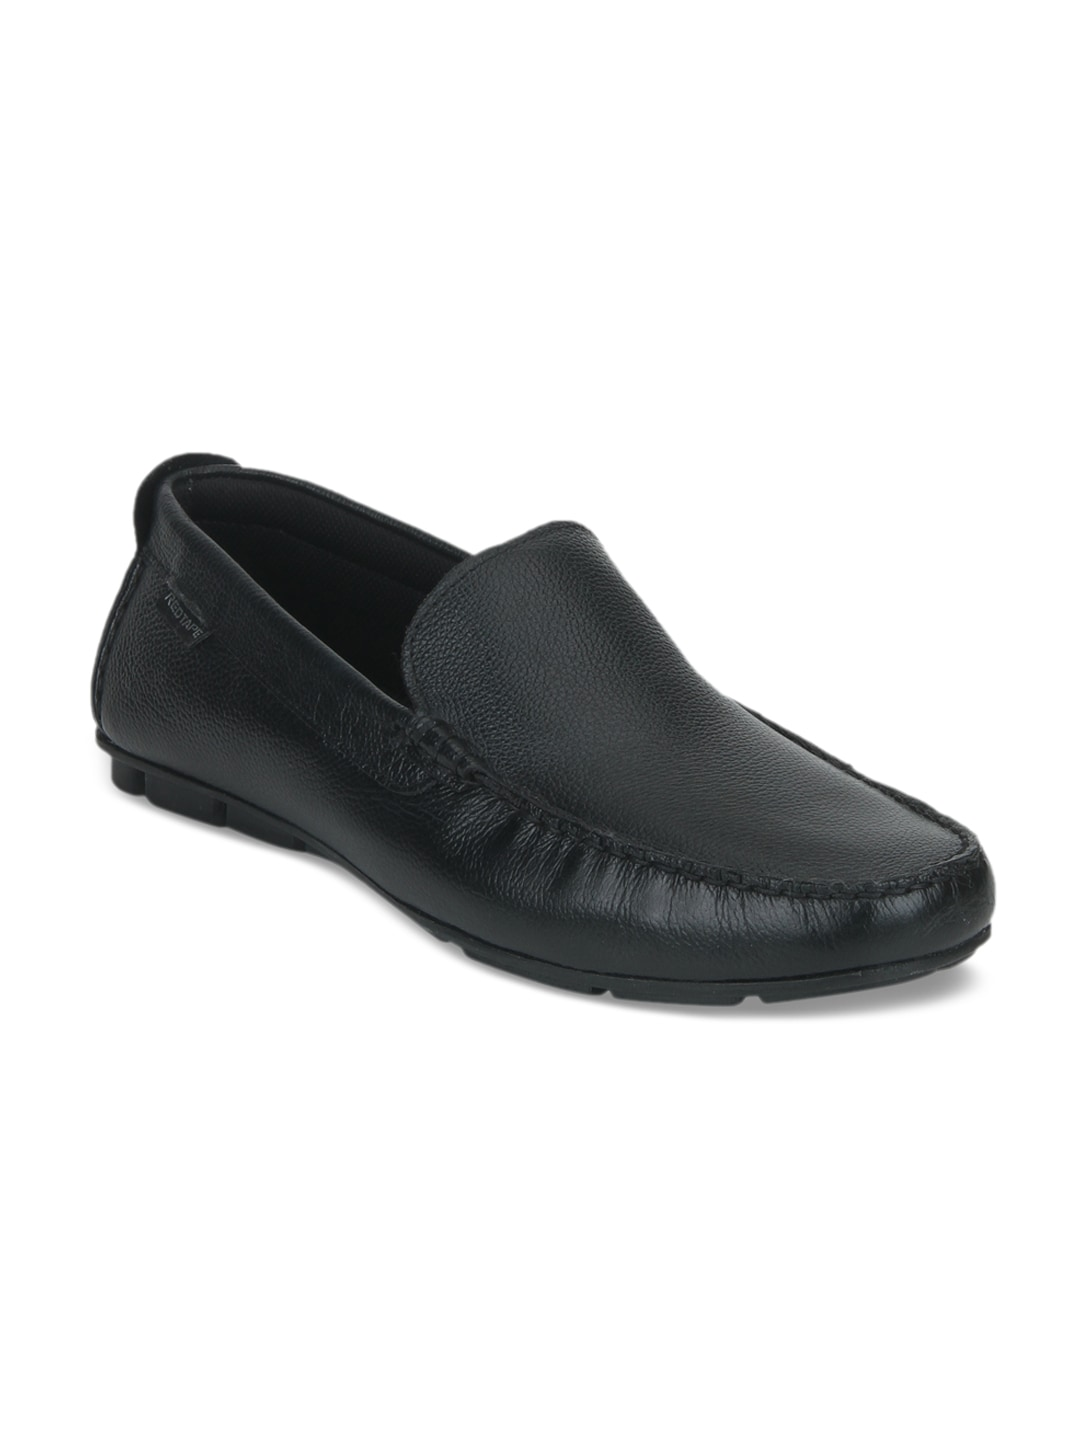 Get Red Tape Black Leather Men's Formal Slip-Ons Online At Best Price